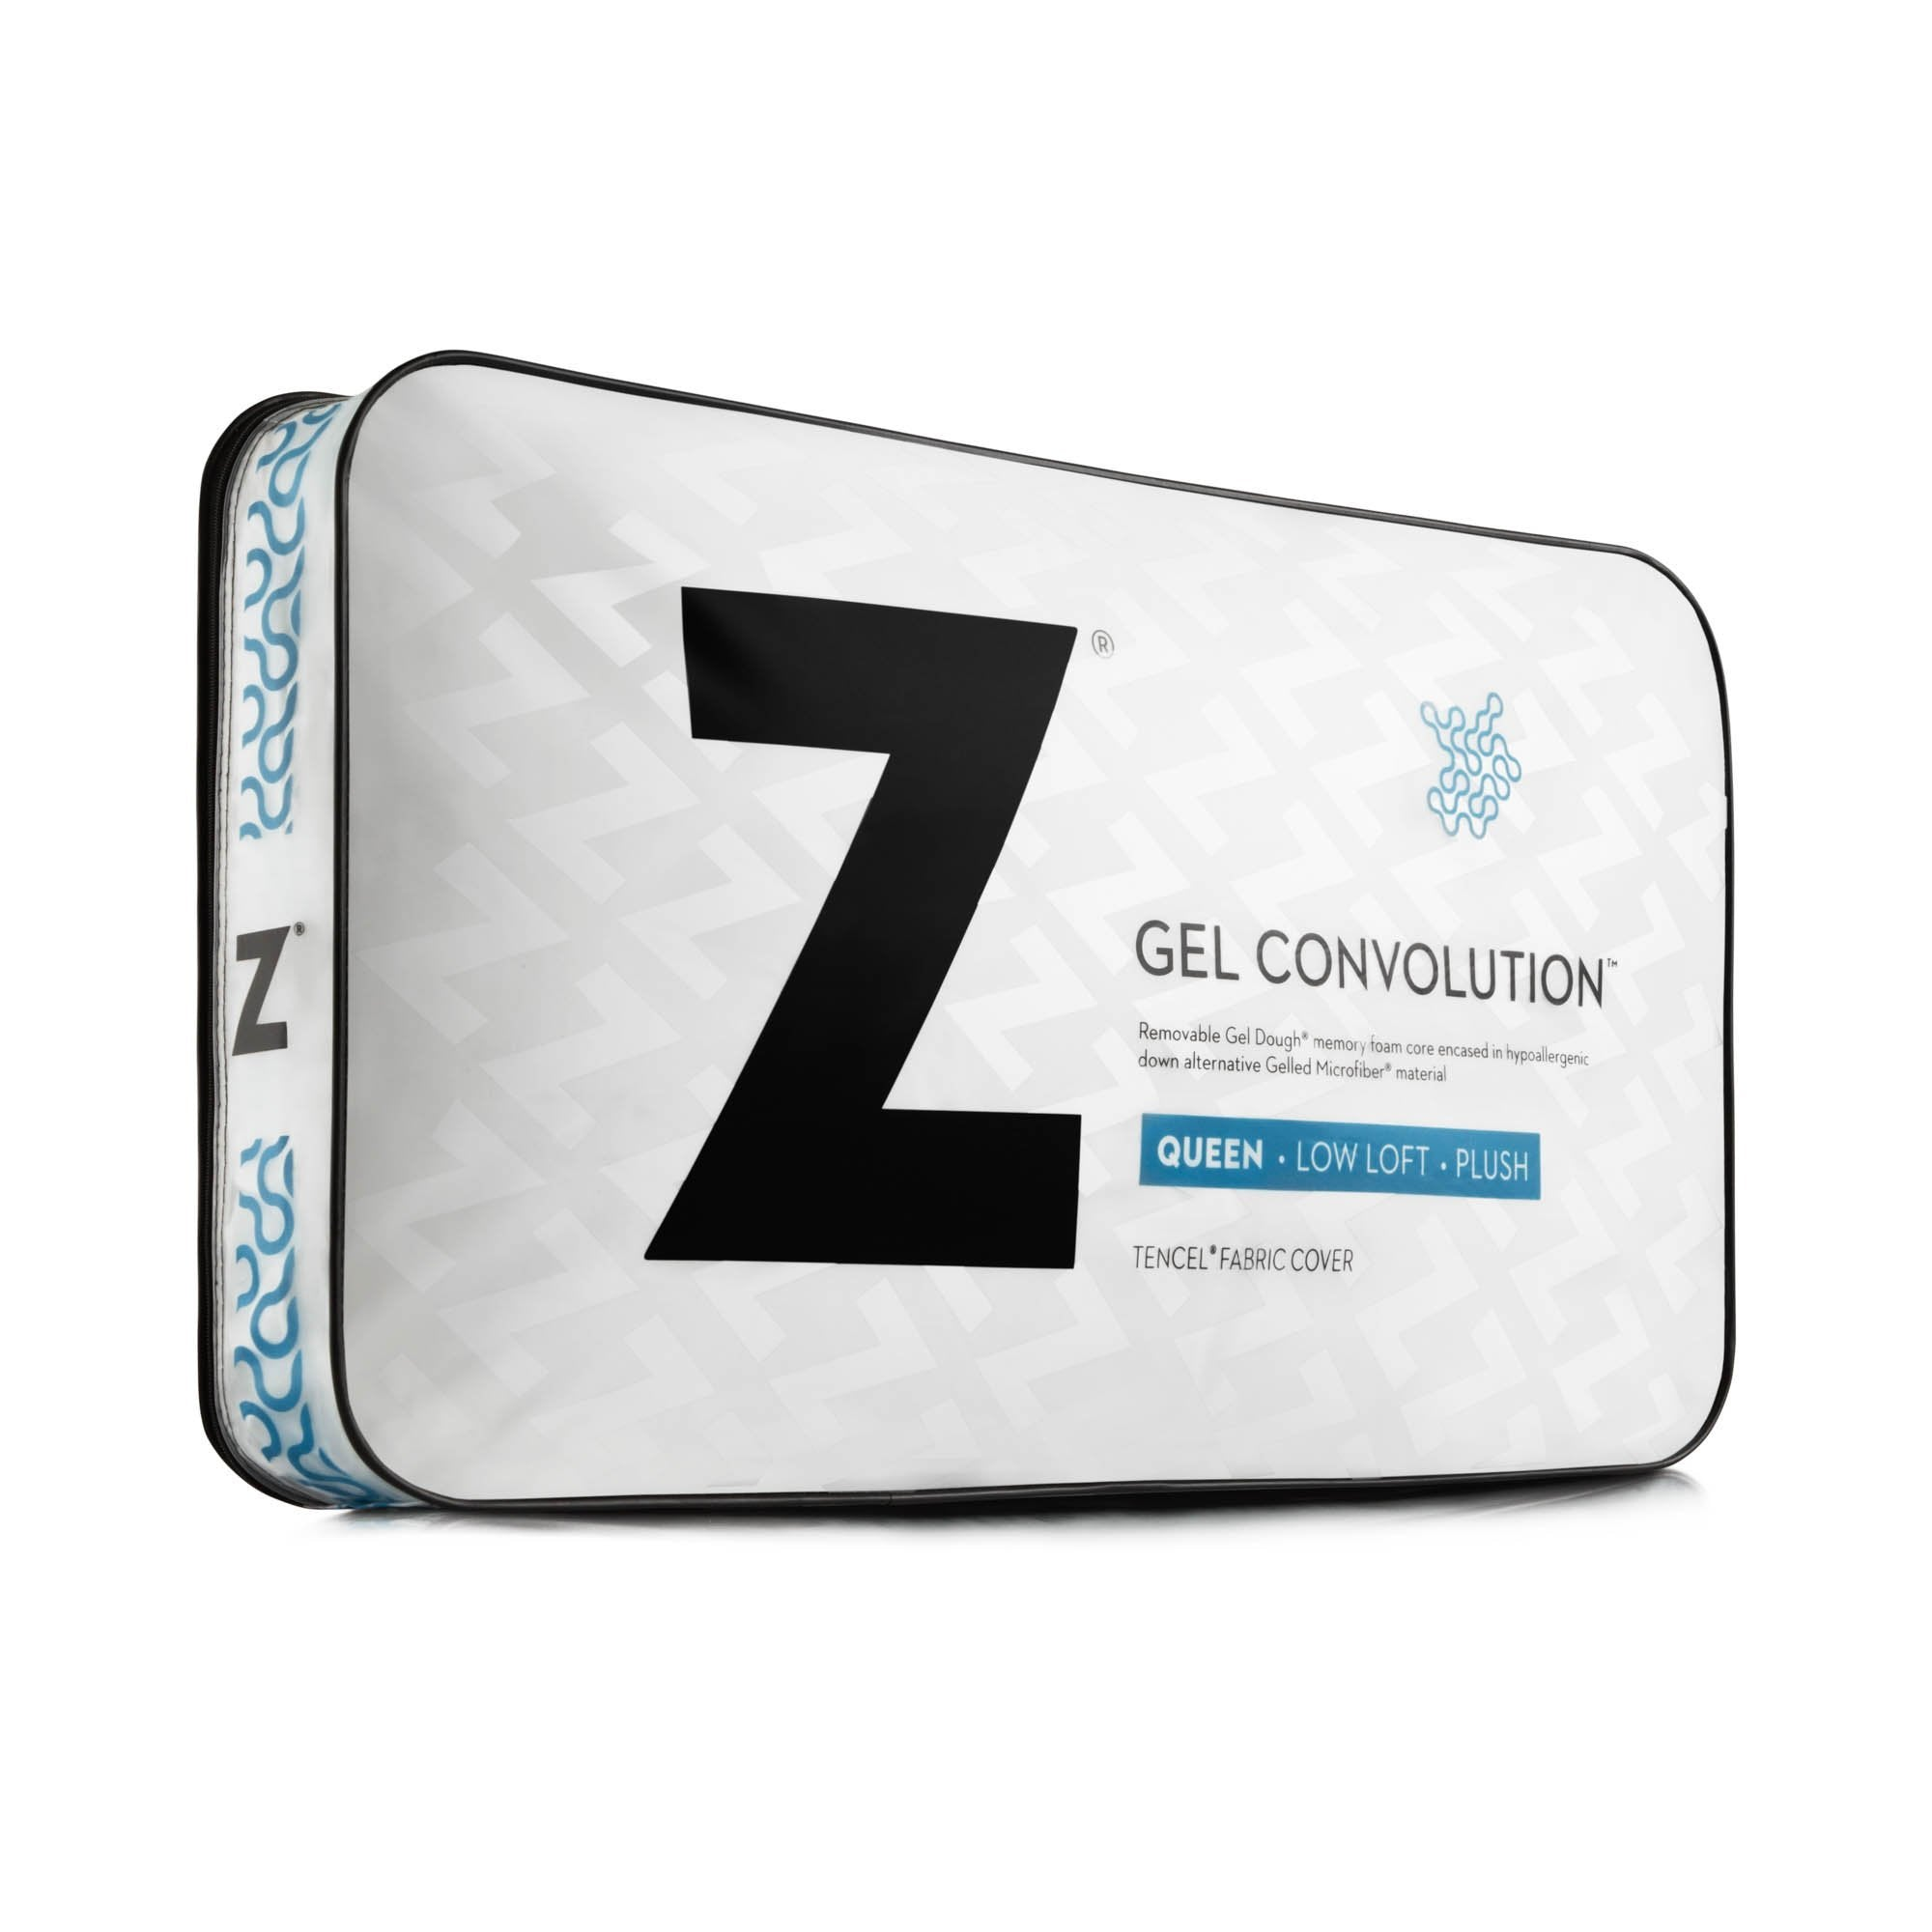 Gel Convolution Pillow Pillow Malouf